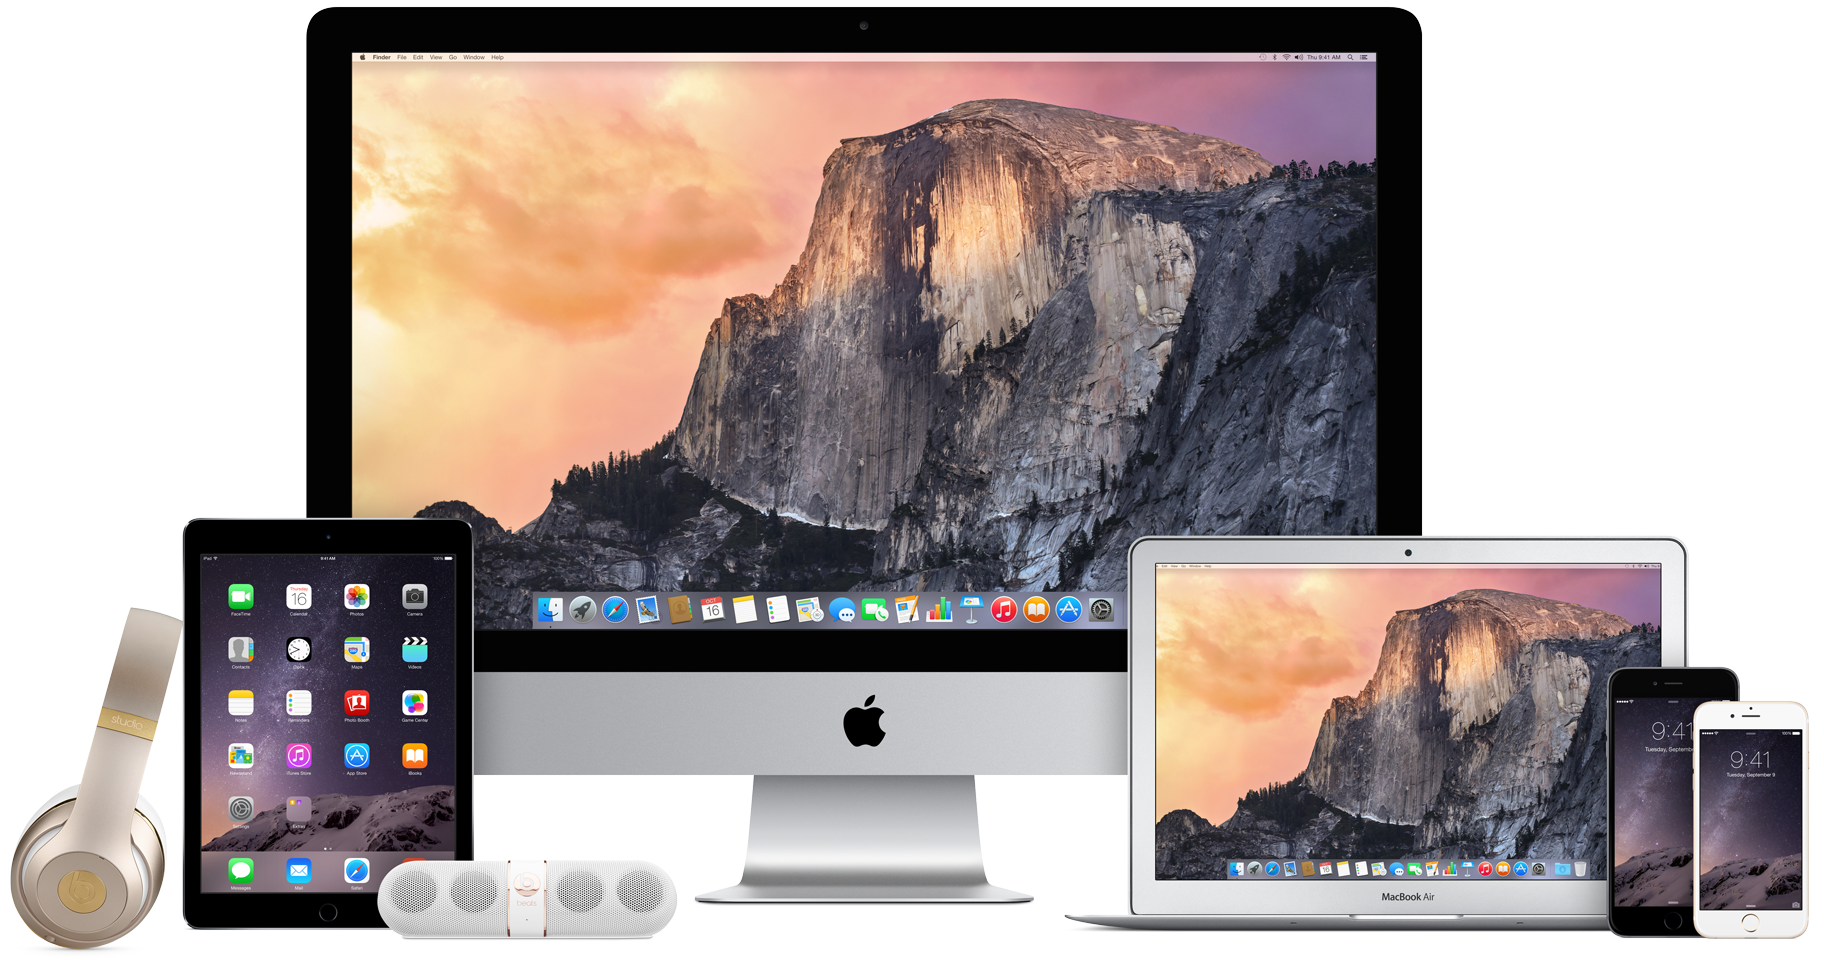 Apple products apple products png - Apple 2017 End Of Financial Year Sales Information Discounts Mac Prices Australia